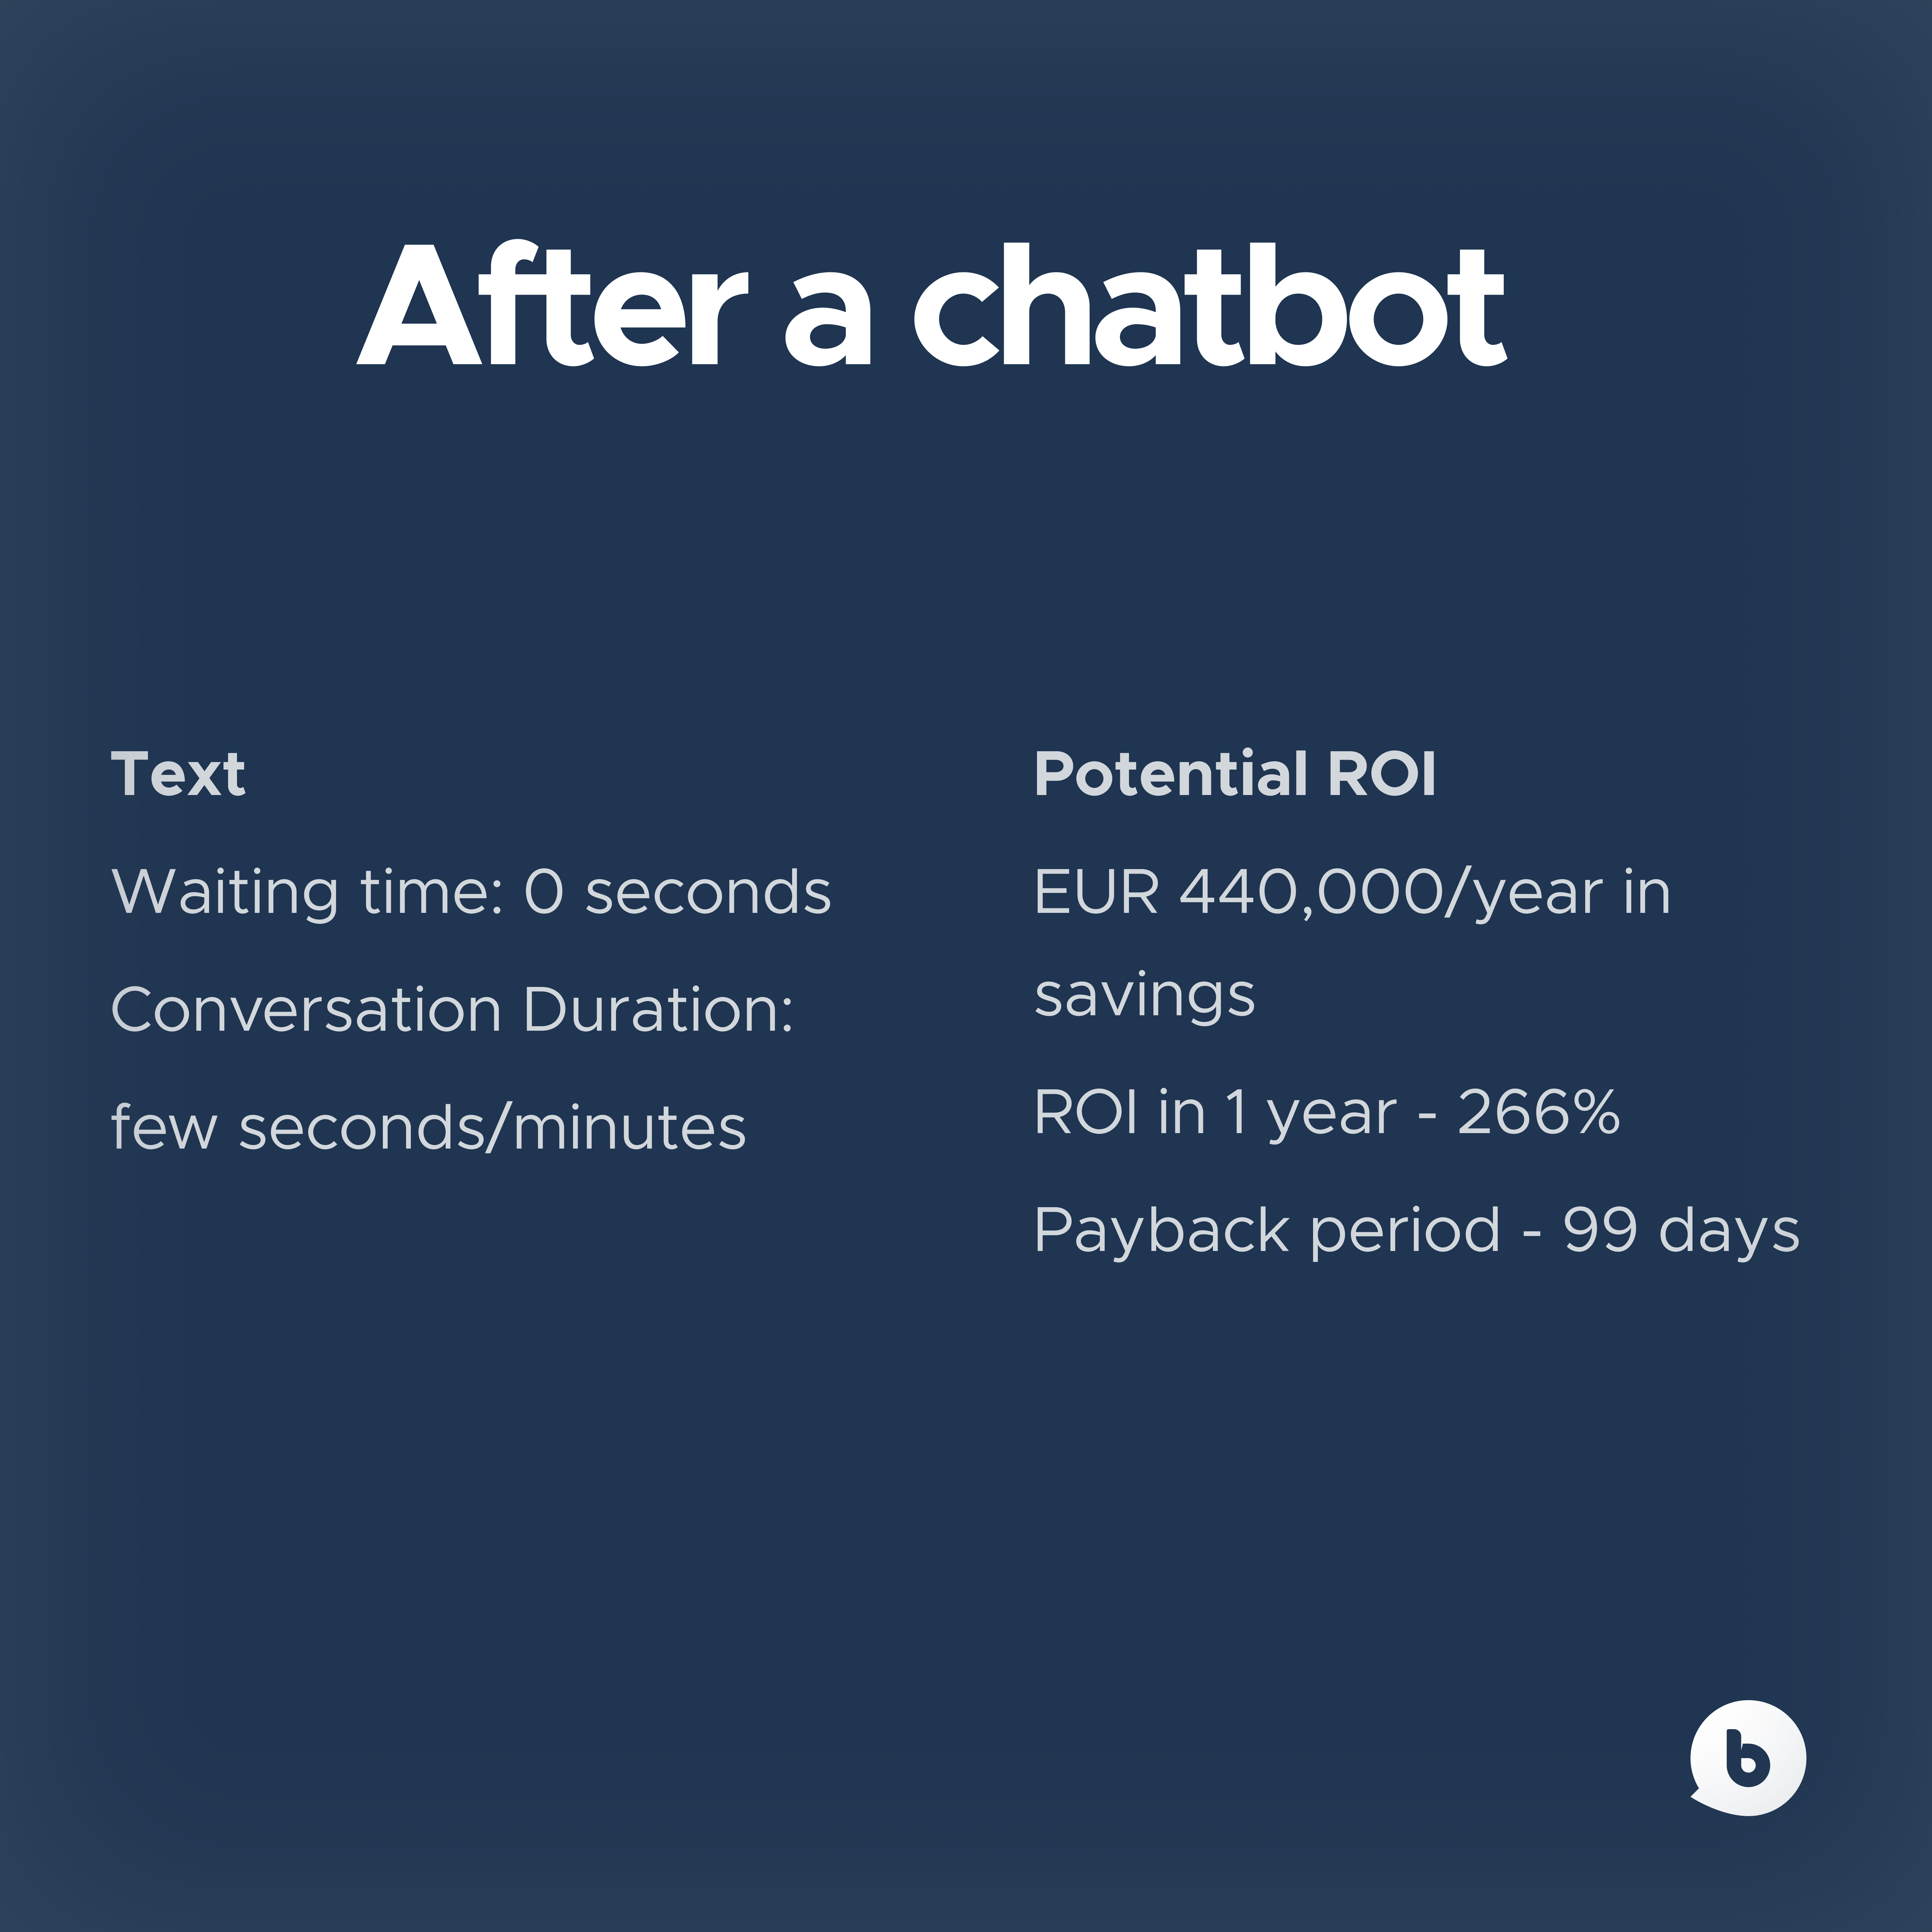 GGM Gastro results after the chatbot